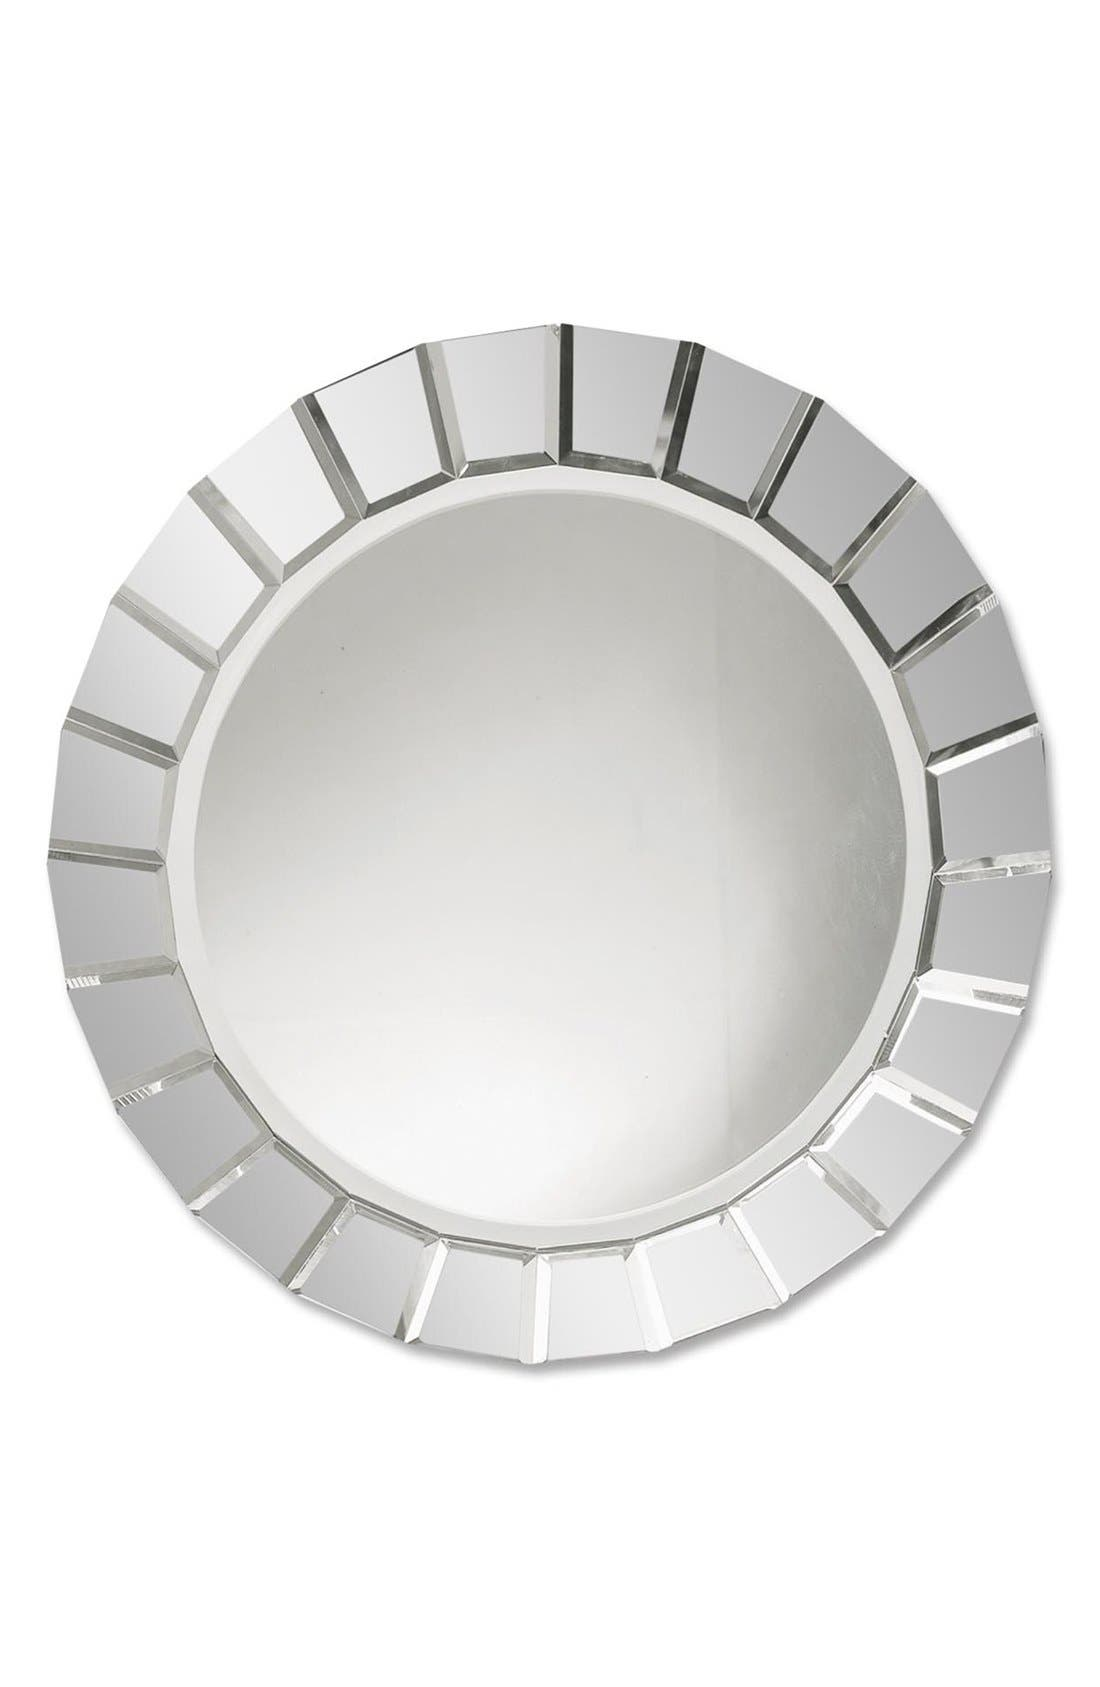 'Fortune' Round Mirror,                             Main thumbnail 1, color,                             White